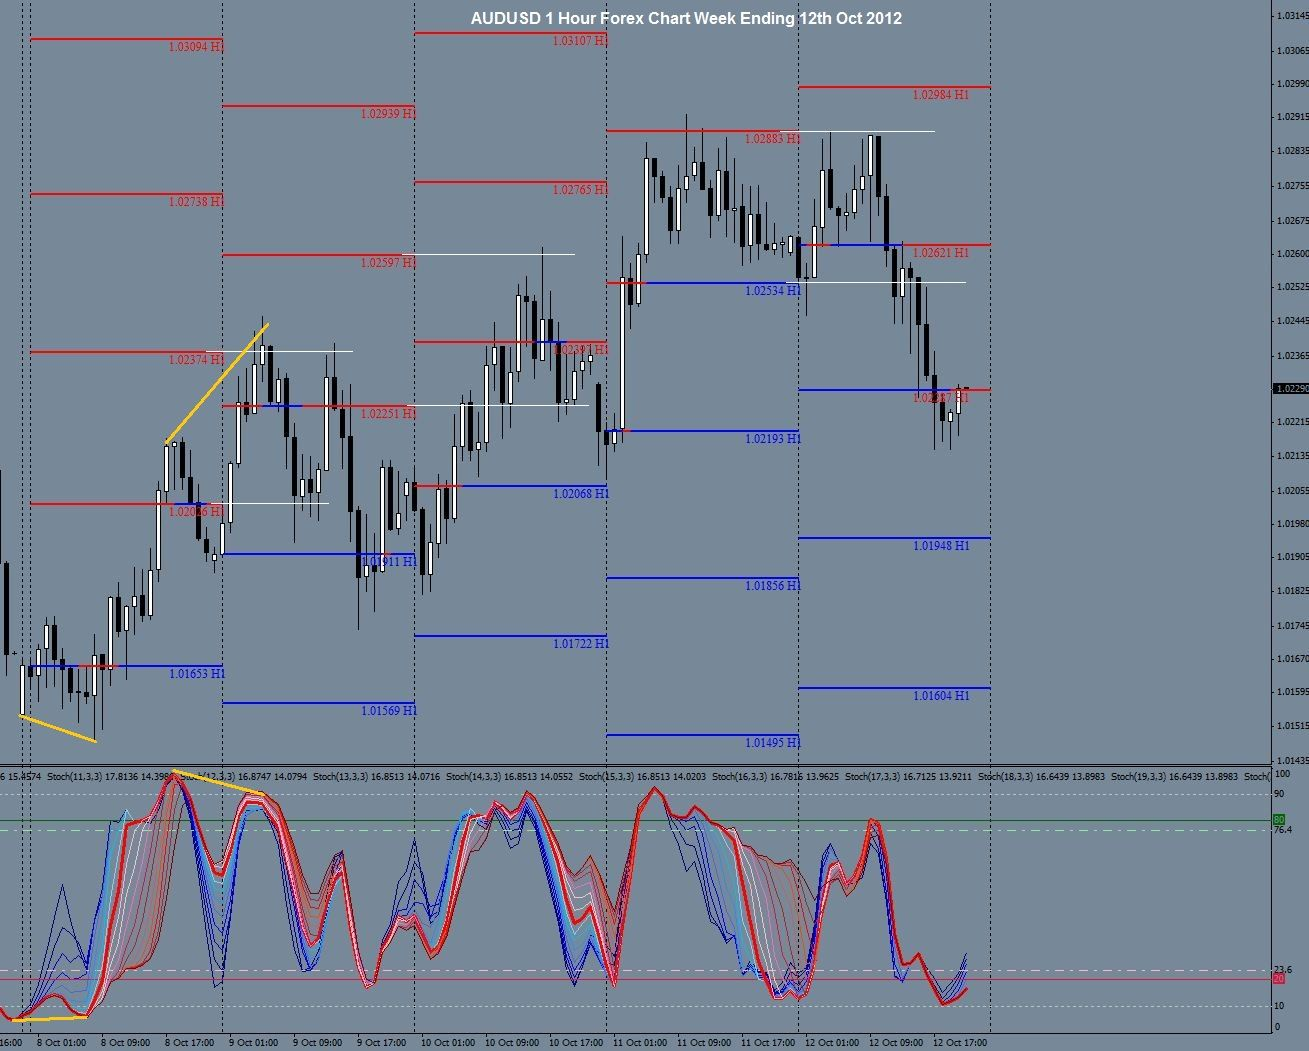 Audusd 1 Hour Forex Chart Week Ending 12th Oct 2012 Chart Line